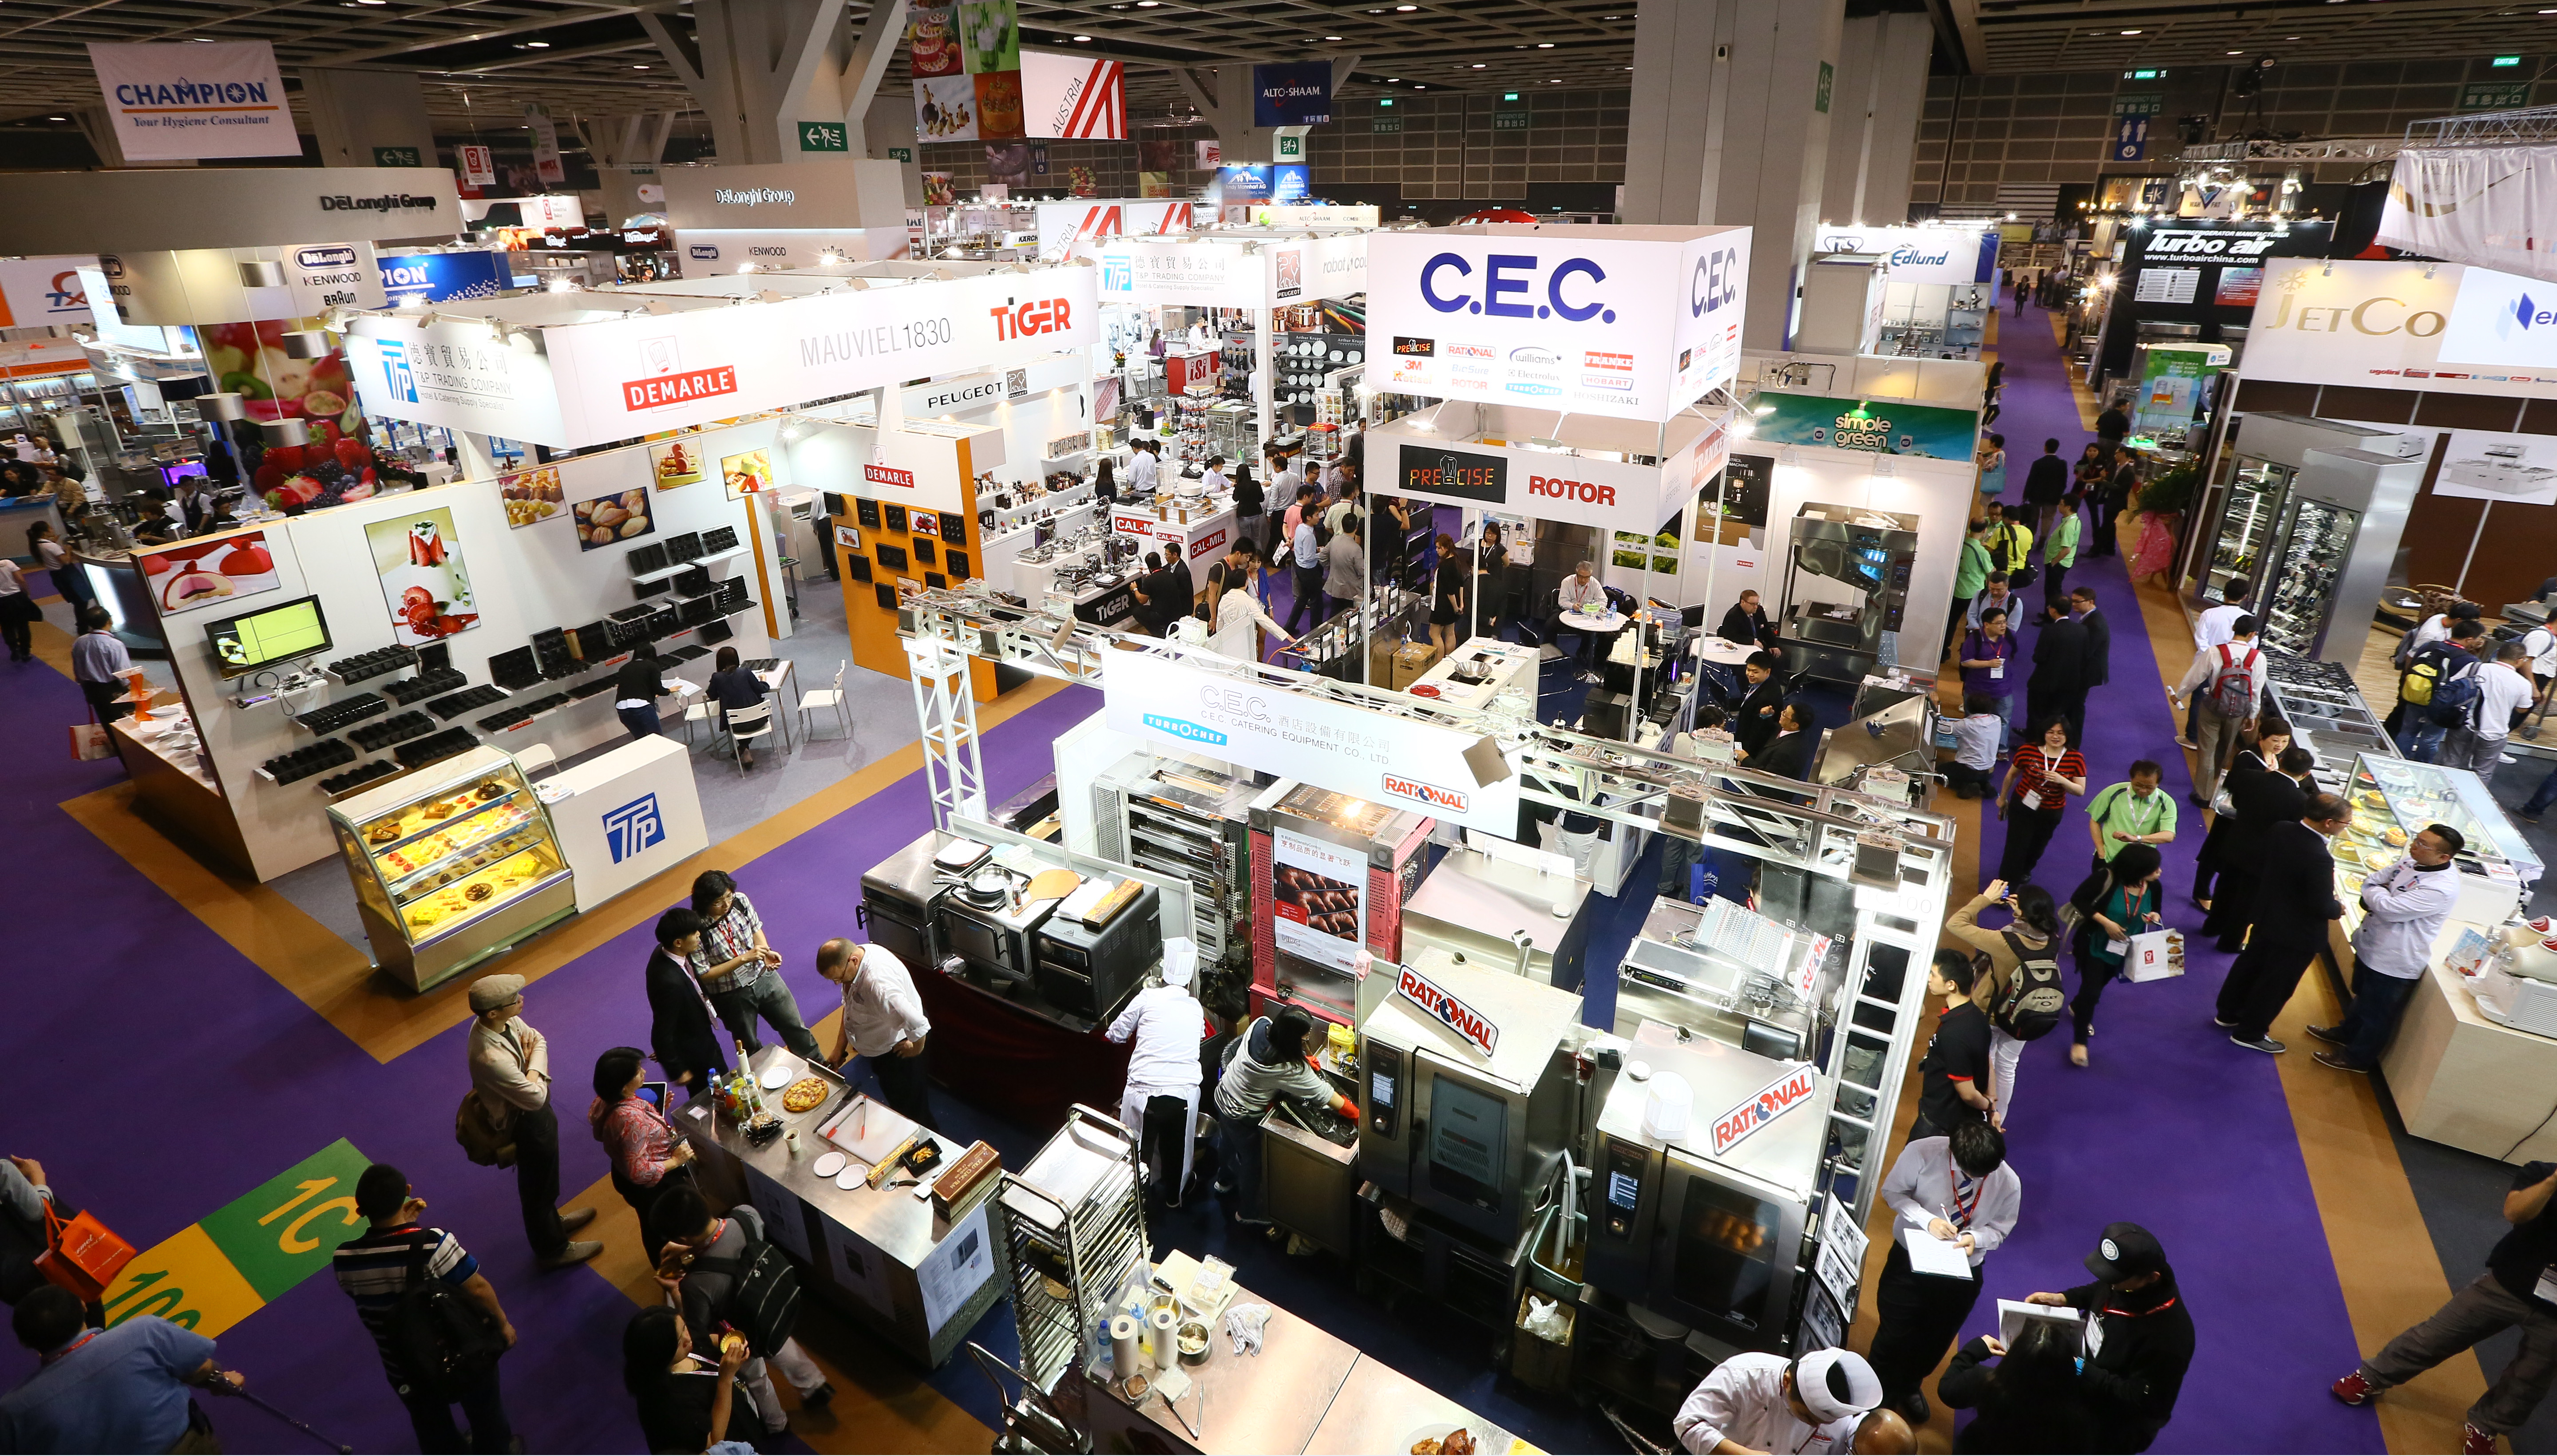 Long the go-to event for foodservice professionals in the Asia Pacific region, Hotelex Shanghai on 1-3 April is the biggest yet, with 1,500 exhibitors from 124 countries preparing to welcome 80,000 visitors